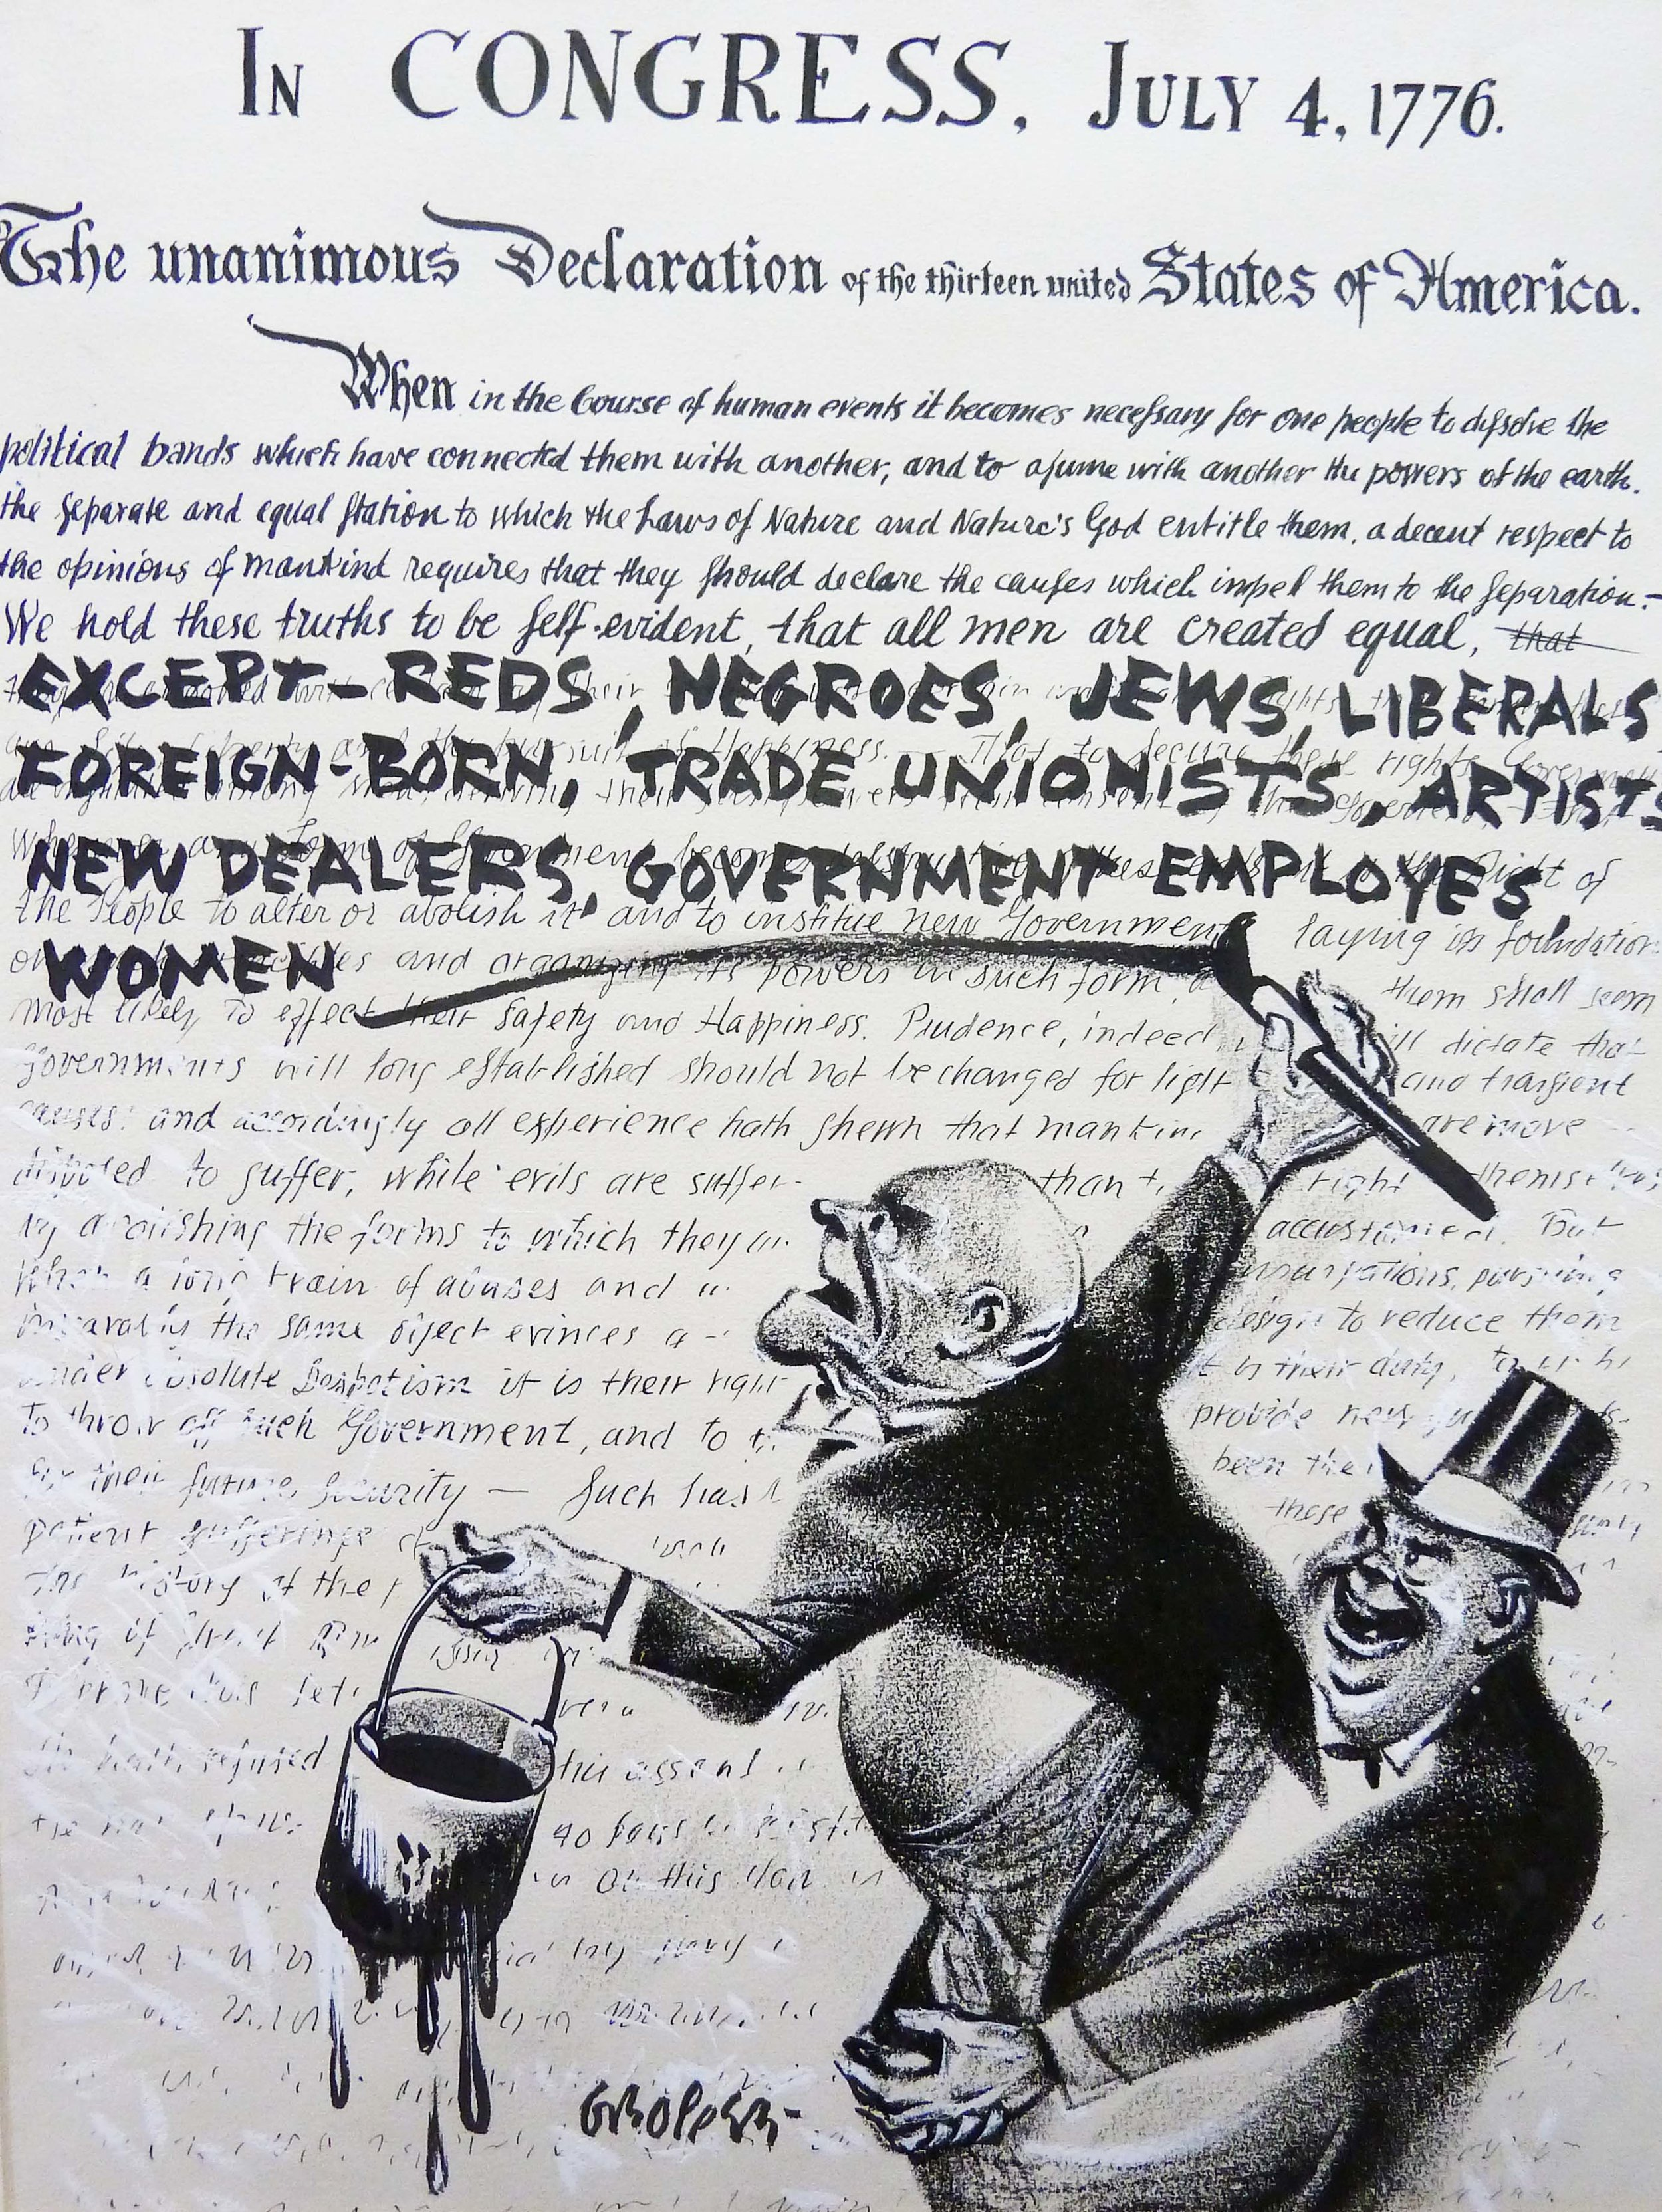 "Let's Not Forget the Socialism in the Resurrection of Socialist Art - The reputation of William Gropper, a radical and prophetic artist, once hounded out of work by the forces of reaction, is being restored at just the moment when the political faith he subscribed to has come back into vogue. Here, and not only here, it is watered down in the process. Asked how she went about presenting Gropper's radical politics in a way that would be accessible for a general audience, the exhibit's curator told me it required ""walking a fine line in terms of celebrating somebody who did cross all of the lines."" (The Nation)"